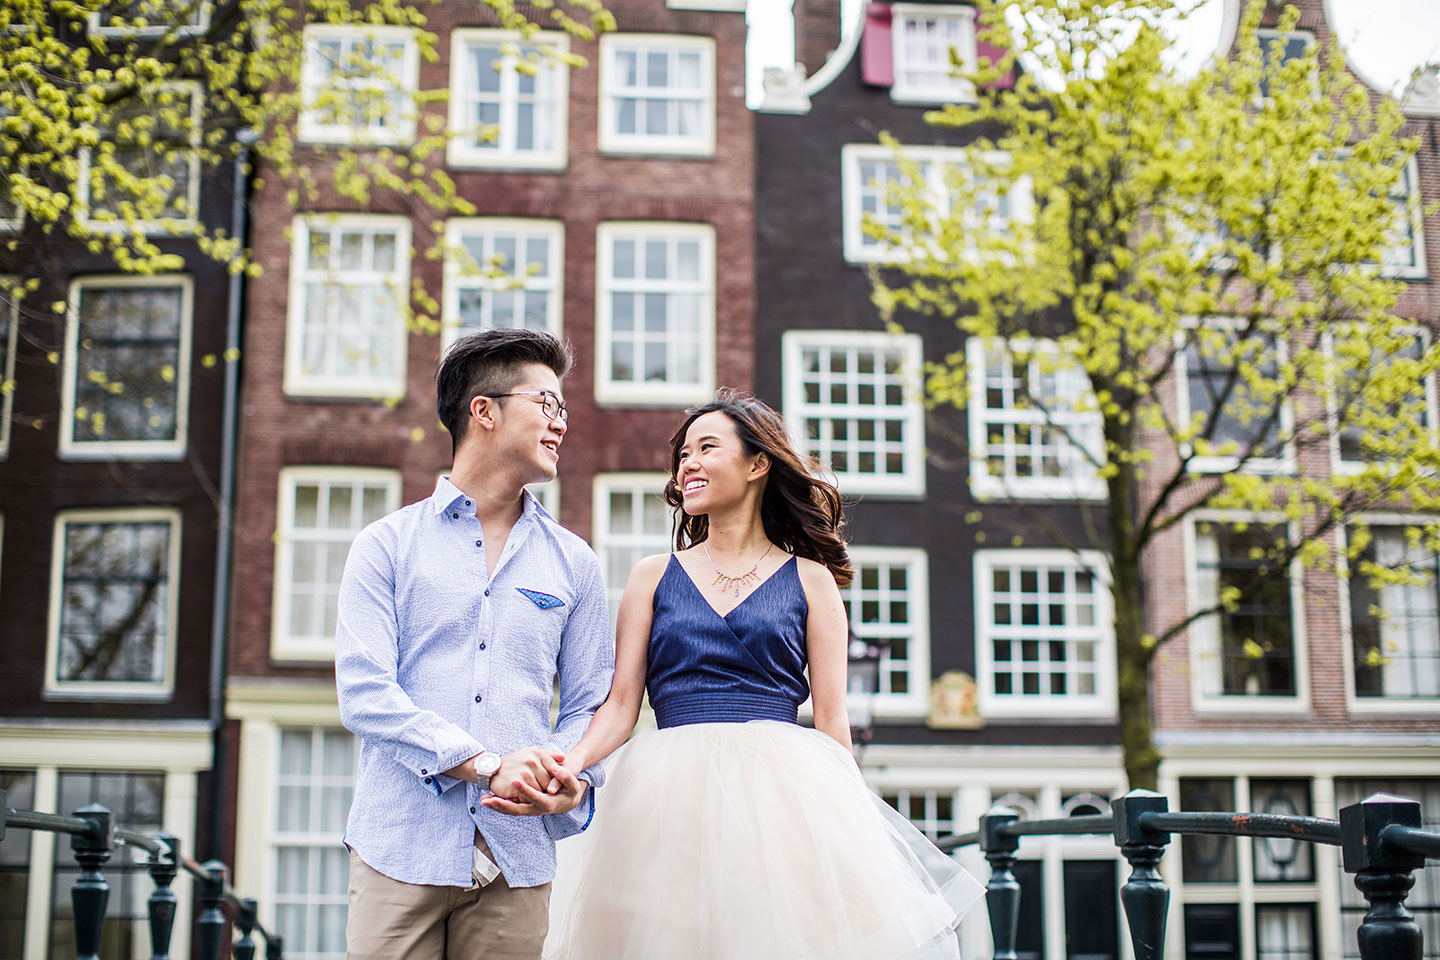 07-amsterdam-prewedding-love-shoot